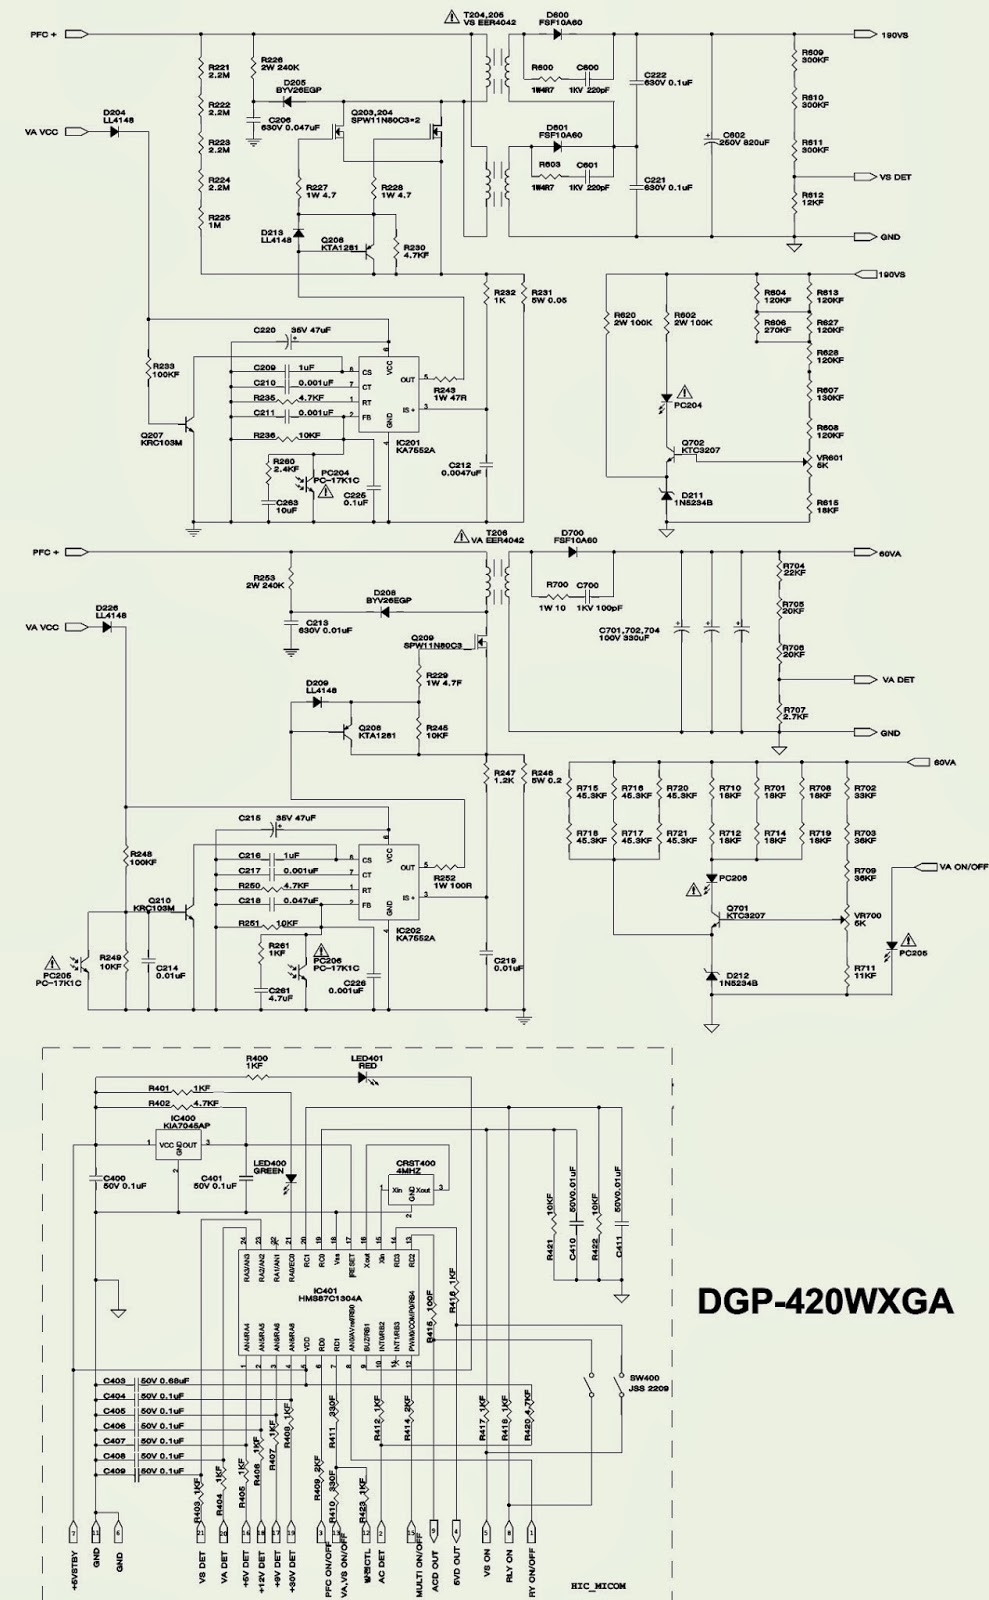 Marvelous Philips 40Pfl3606 Lcd Tv Power Supply Schematic Electro Help Wiring Digital Resources Remcakbiperorg